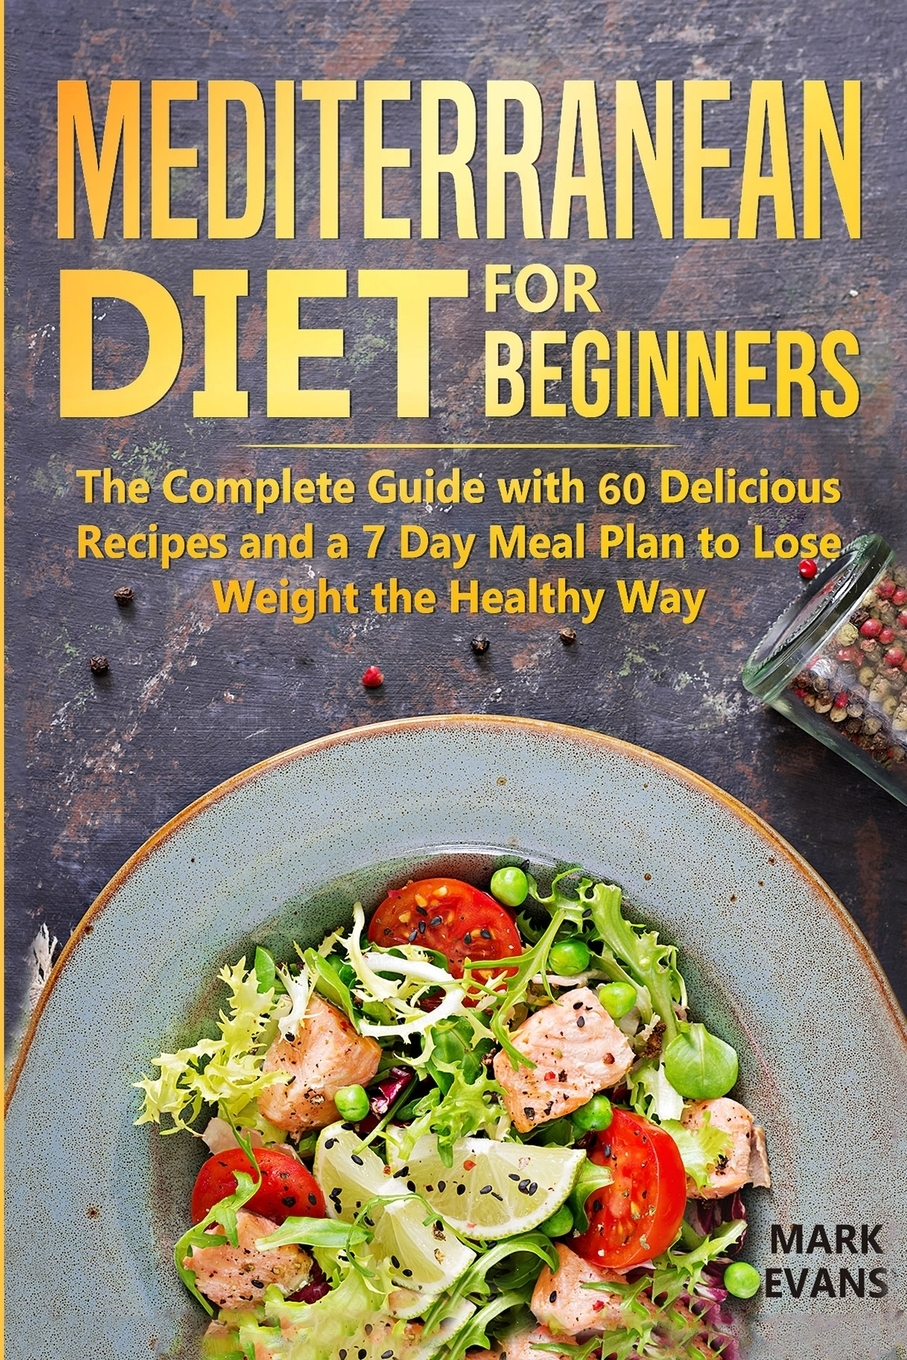 Mark Evans Mediterranean Diet for Beginners. The Complete Guide with 60 Delicious Recipes and a 7-Day Meal Plan to Lose Weight the Healthy Way